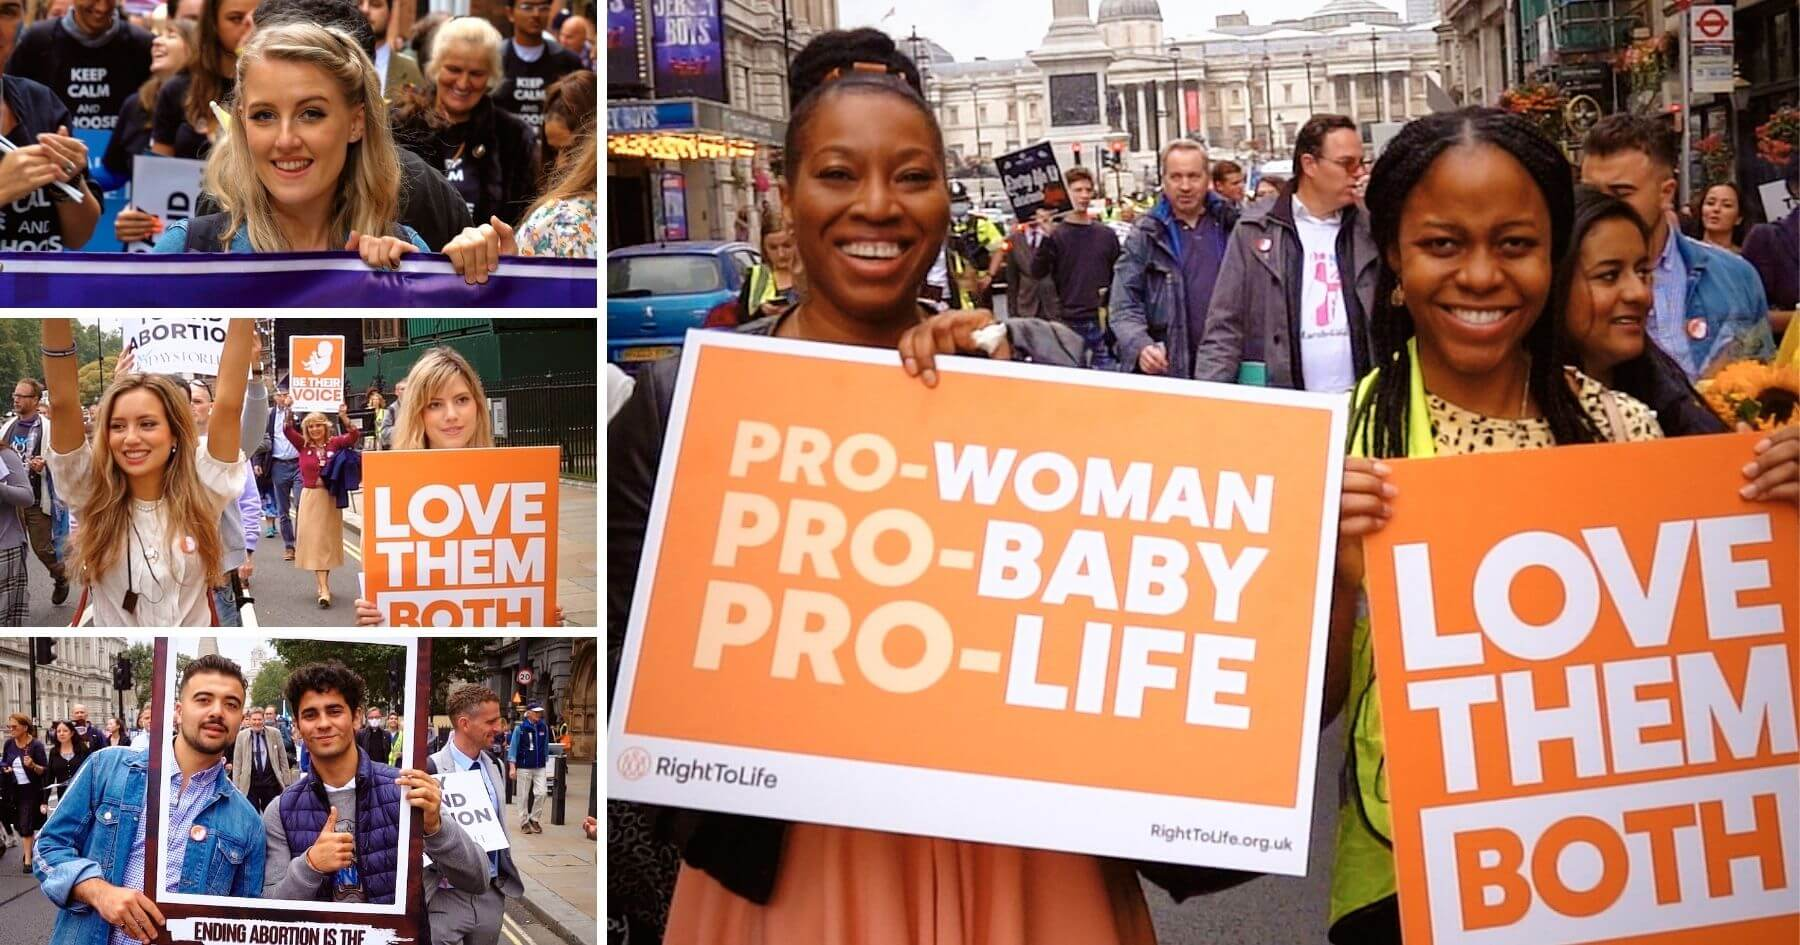 march for life uk london 2021